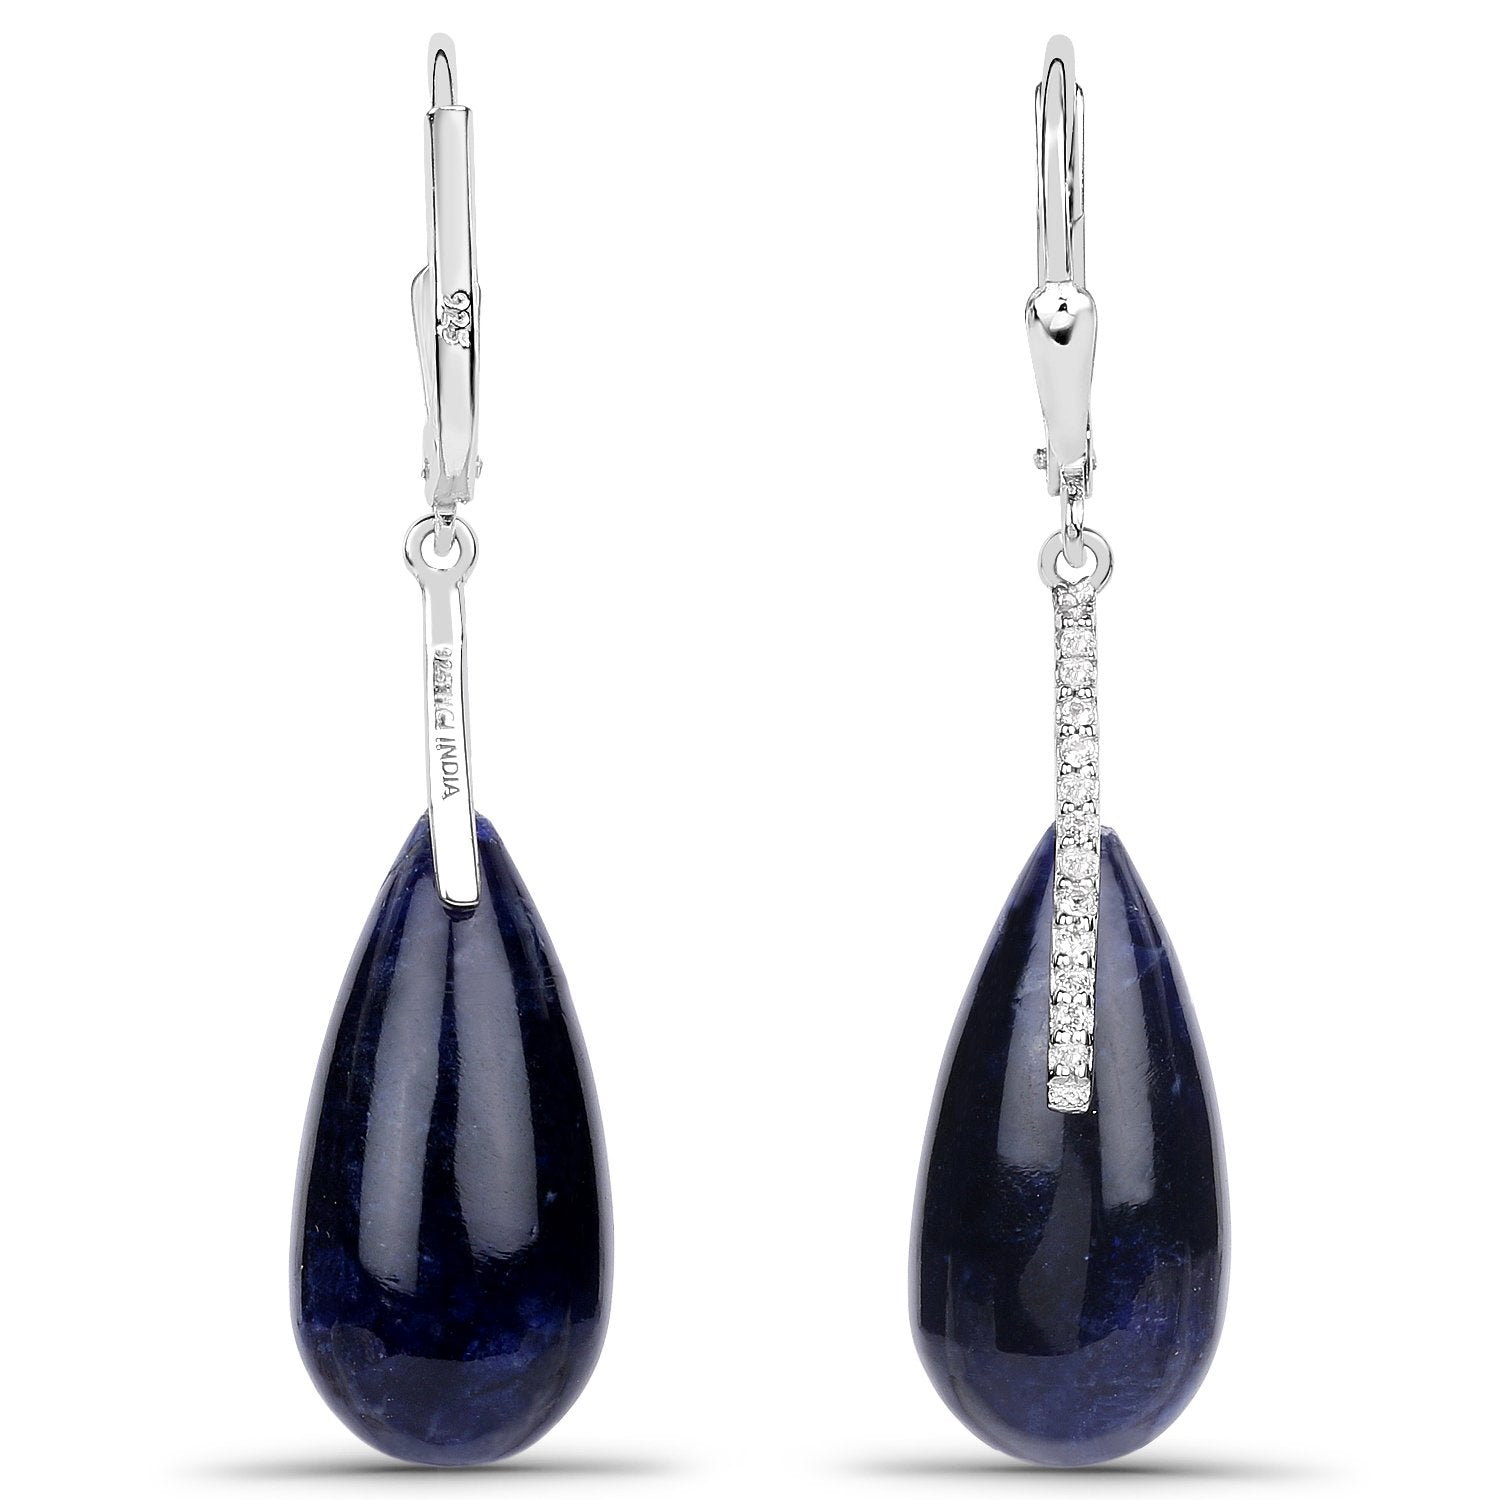 LoveHuang 21.06 Carats Genuine Blue Aventurine and White Topaz Drop Earrings Solid .925 Sterling Silver With Rhodium Plating